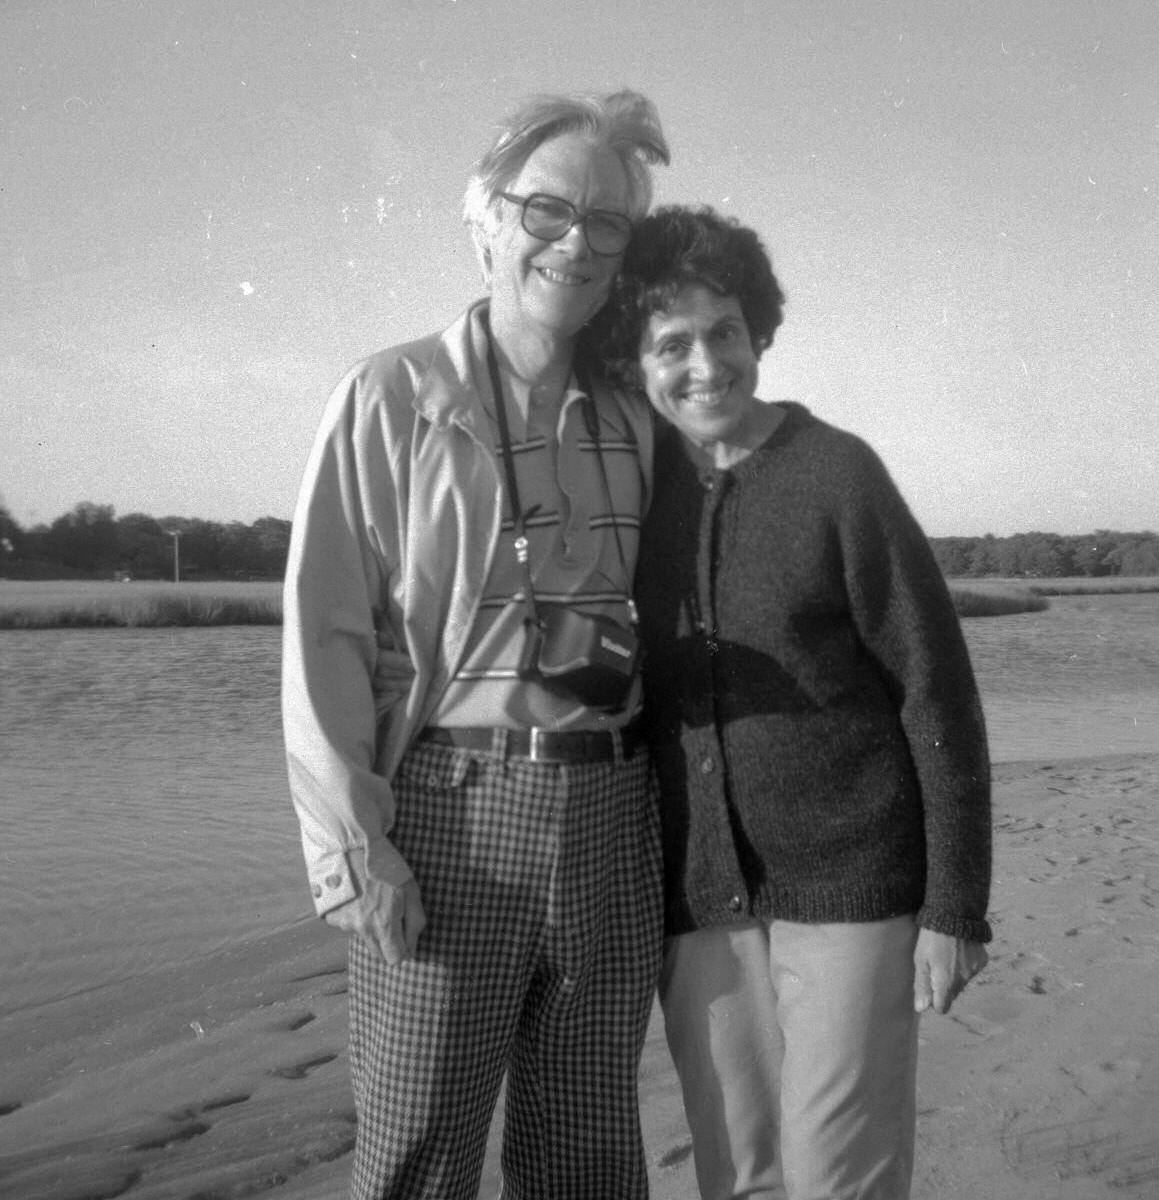 Edgar and Mina Gilbert, 1983